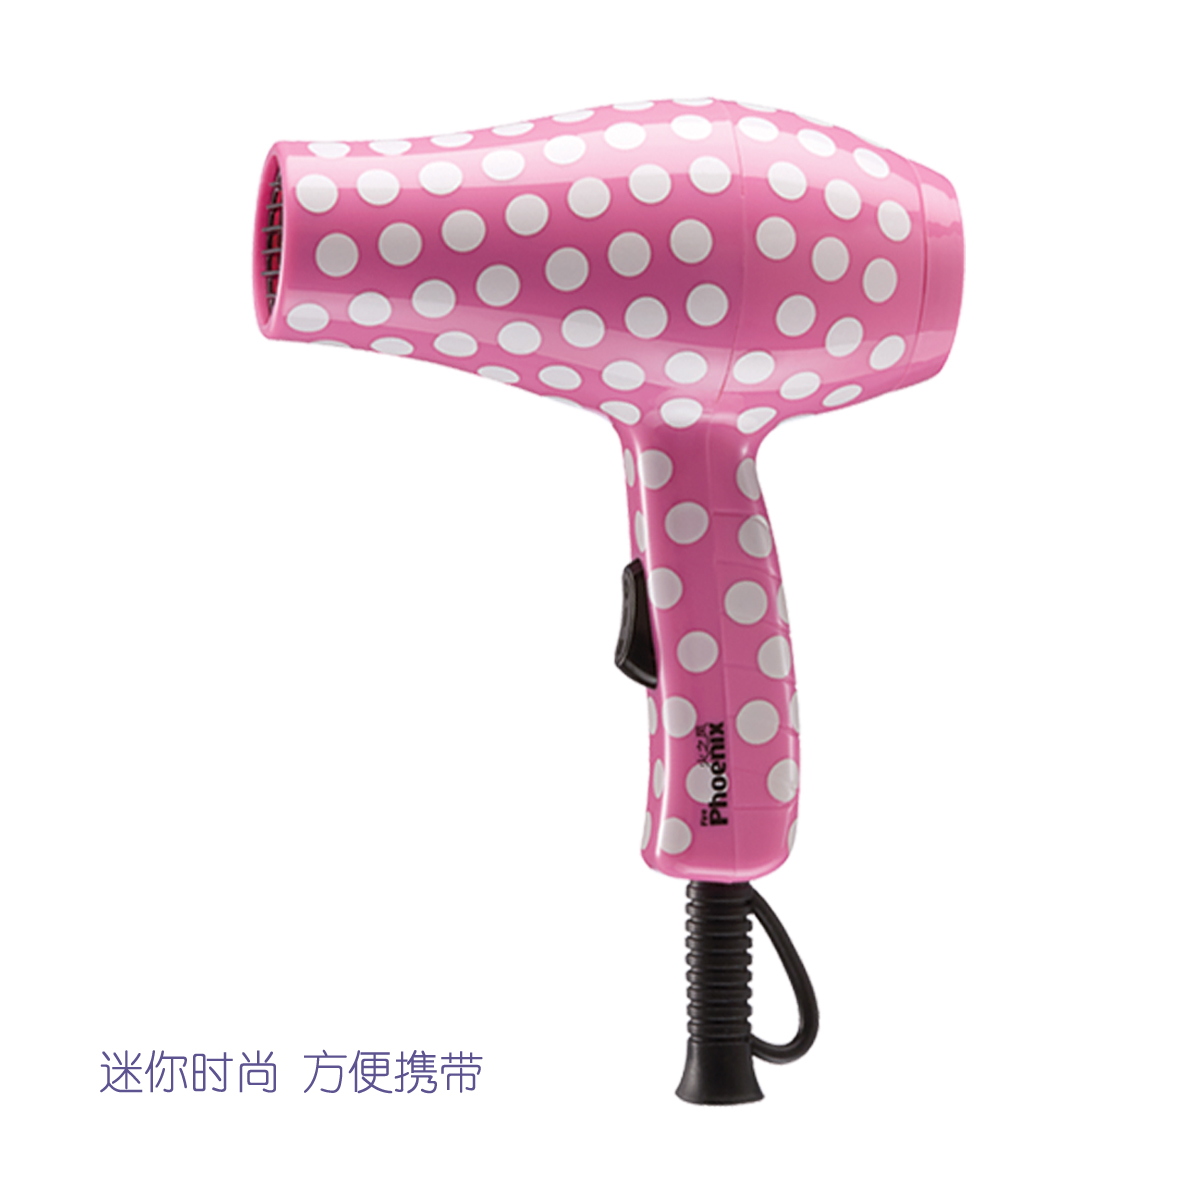 Phoenix fire 108b dryer compact mini fashion travel portable mini home hot air hair dryer drum